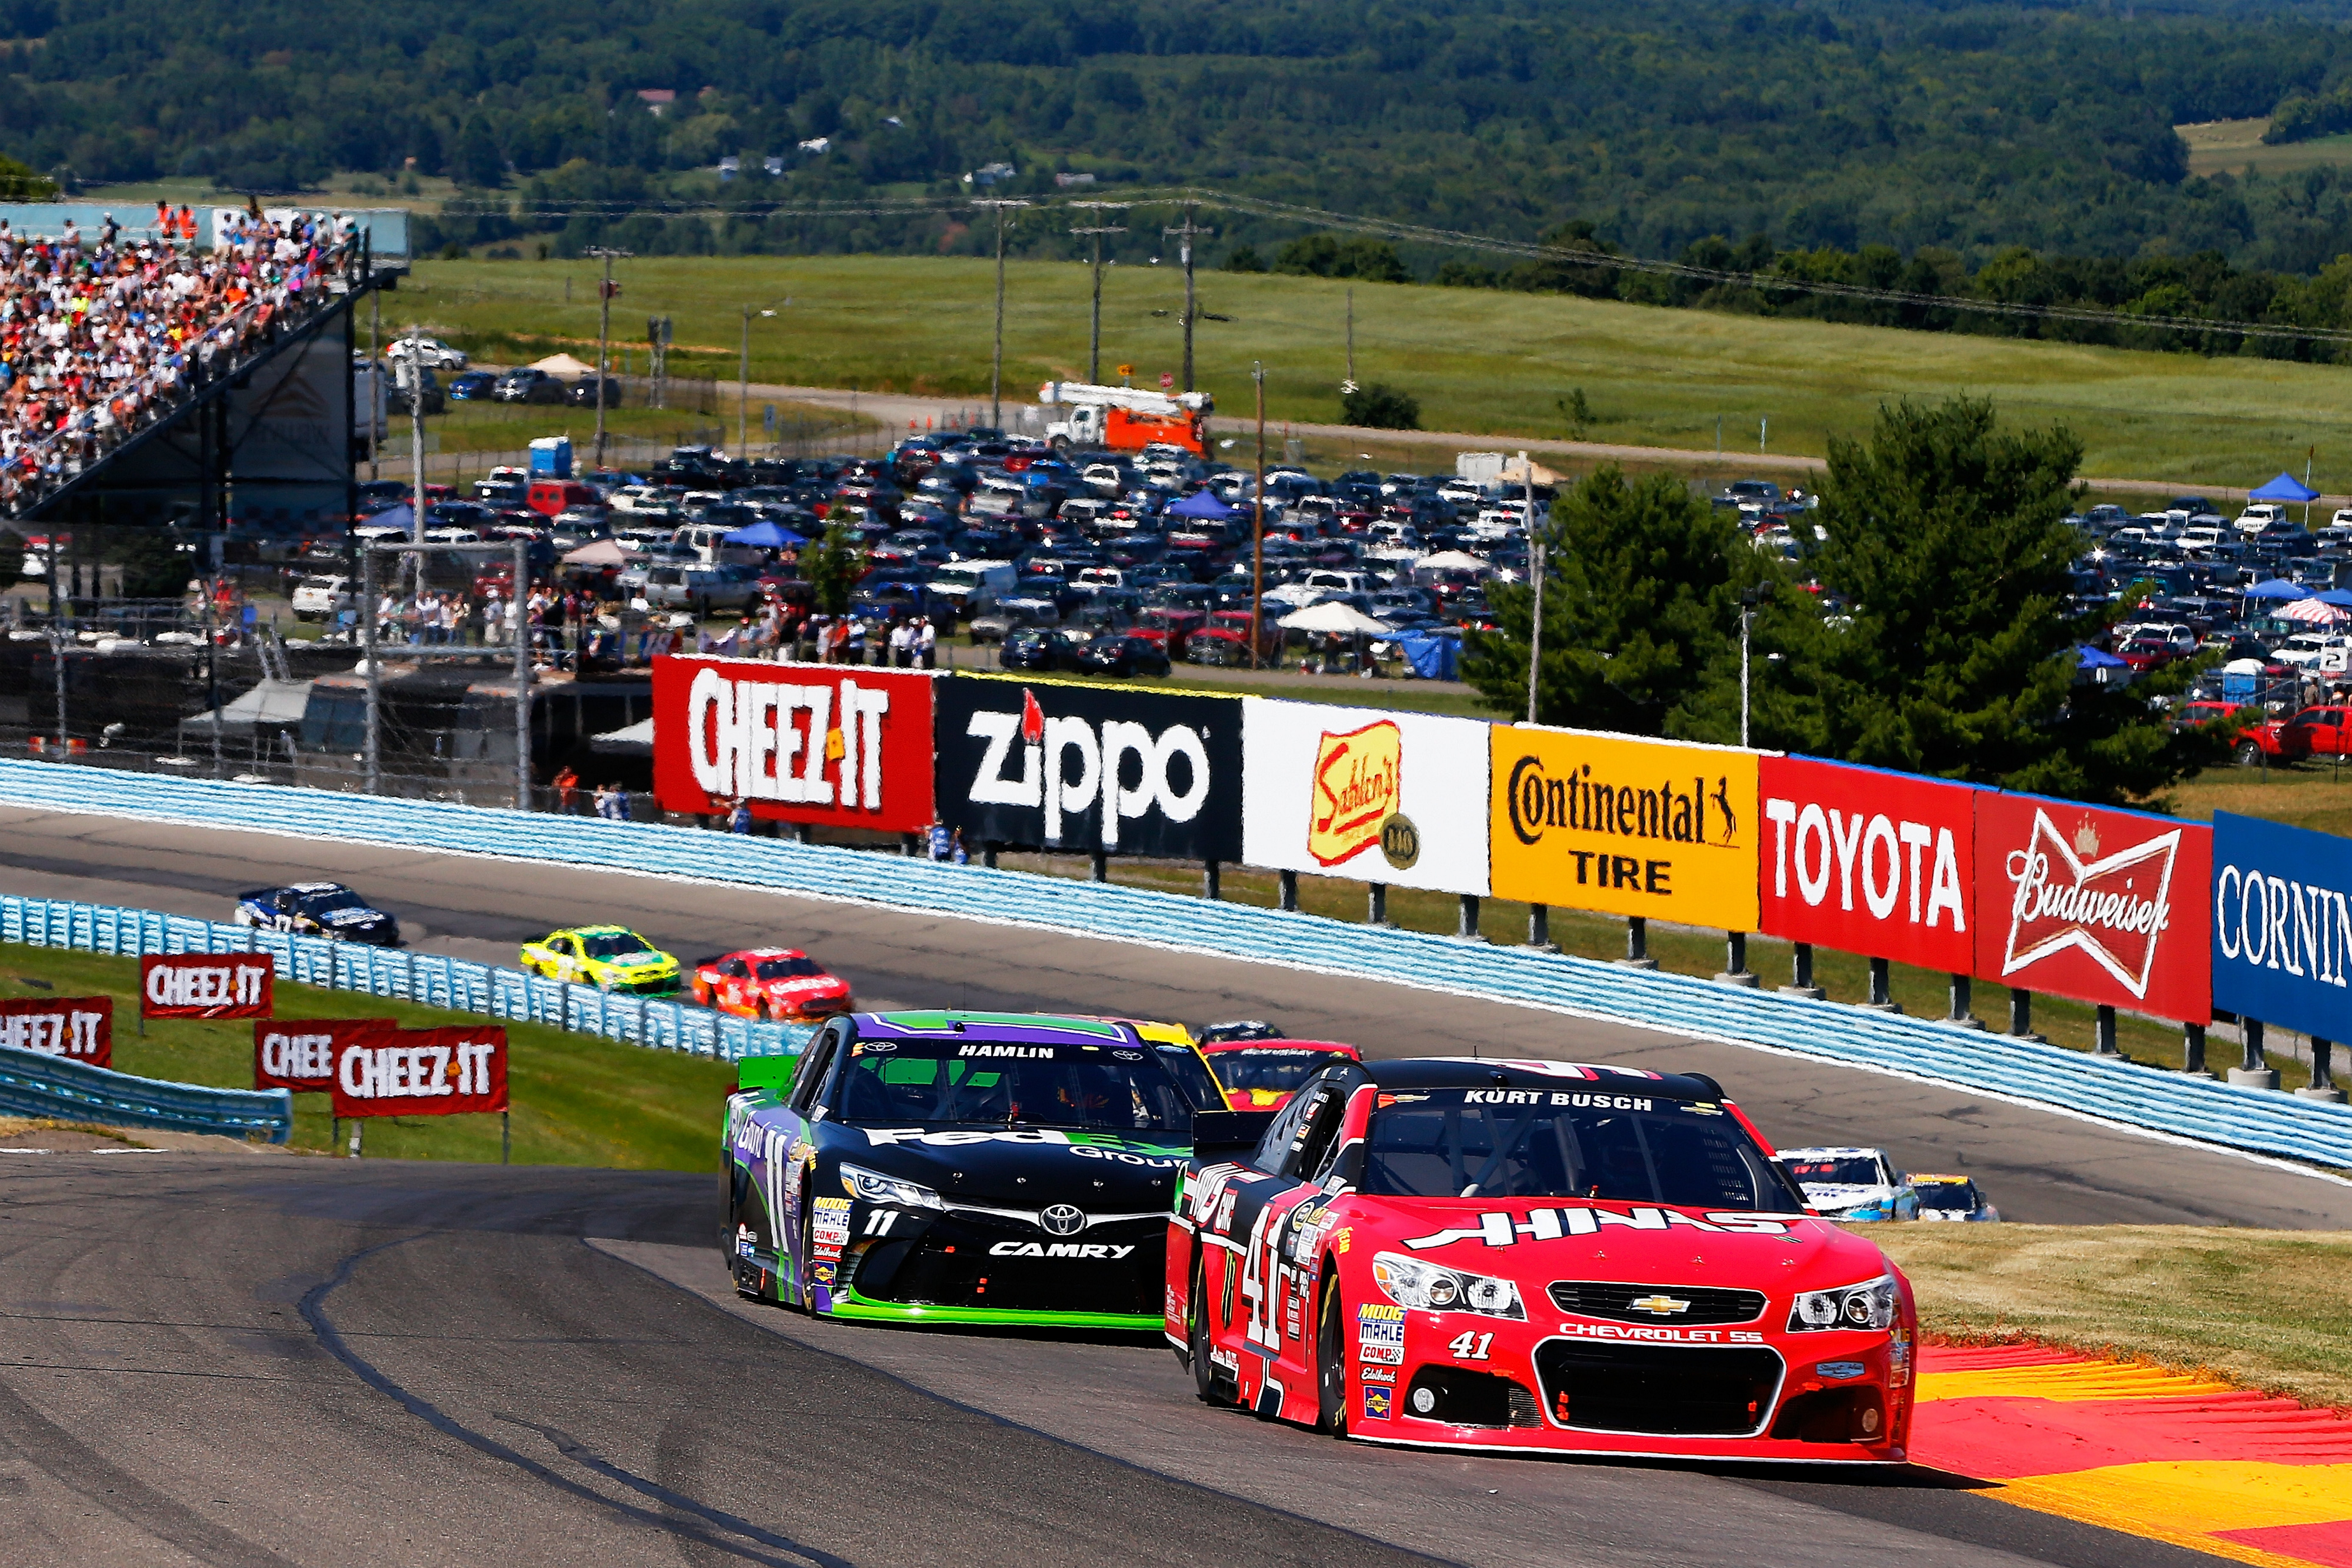 Kurt Busch, driver of the #41 Haas Automation Chevrolet, leads the pack during the 2015 Cheez-It 355 at the Glen at Watkins Glen International. (Getty Images)